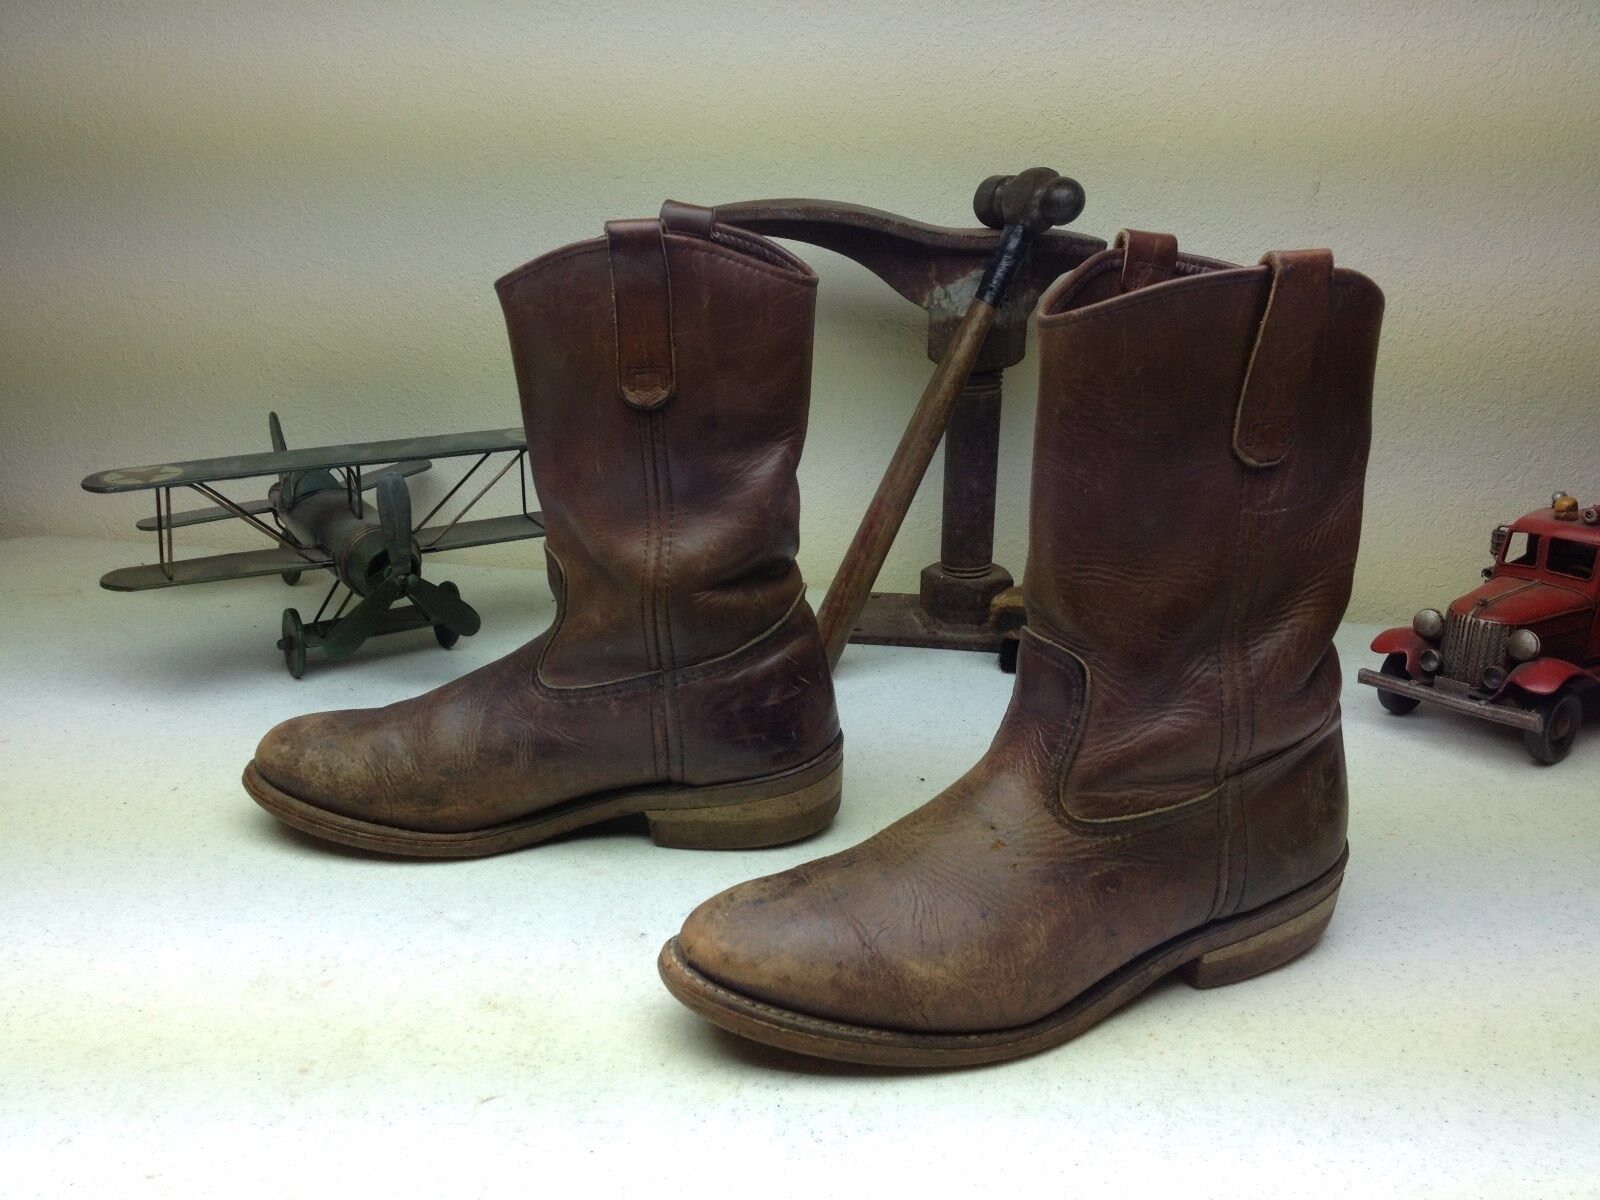 DISTRESSED USA RED WING ENGINEER WORK CHORE BROWN AMBER HONEY LEATHER BOOT 8 D